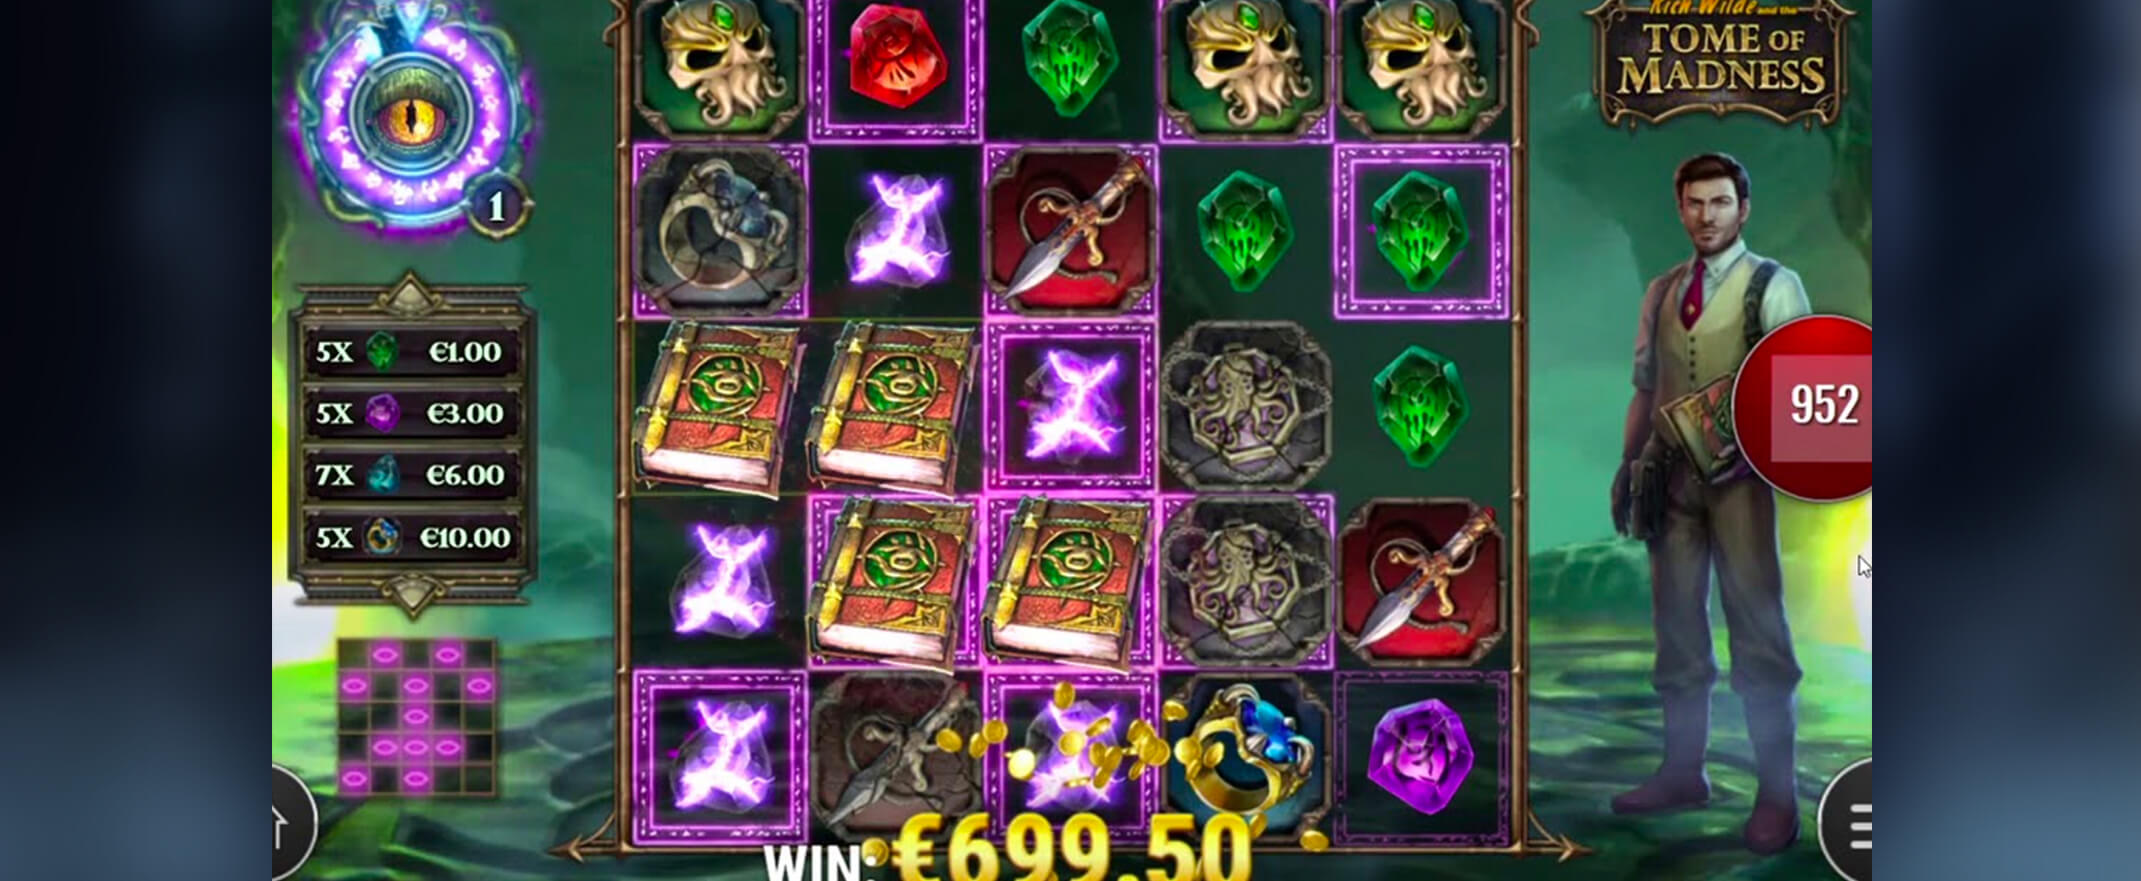 rich-wild-and-the-tome-of-madness-free-spins